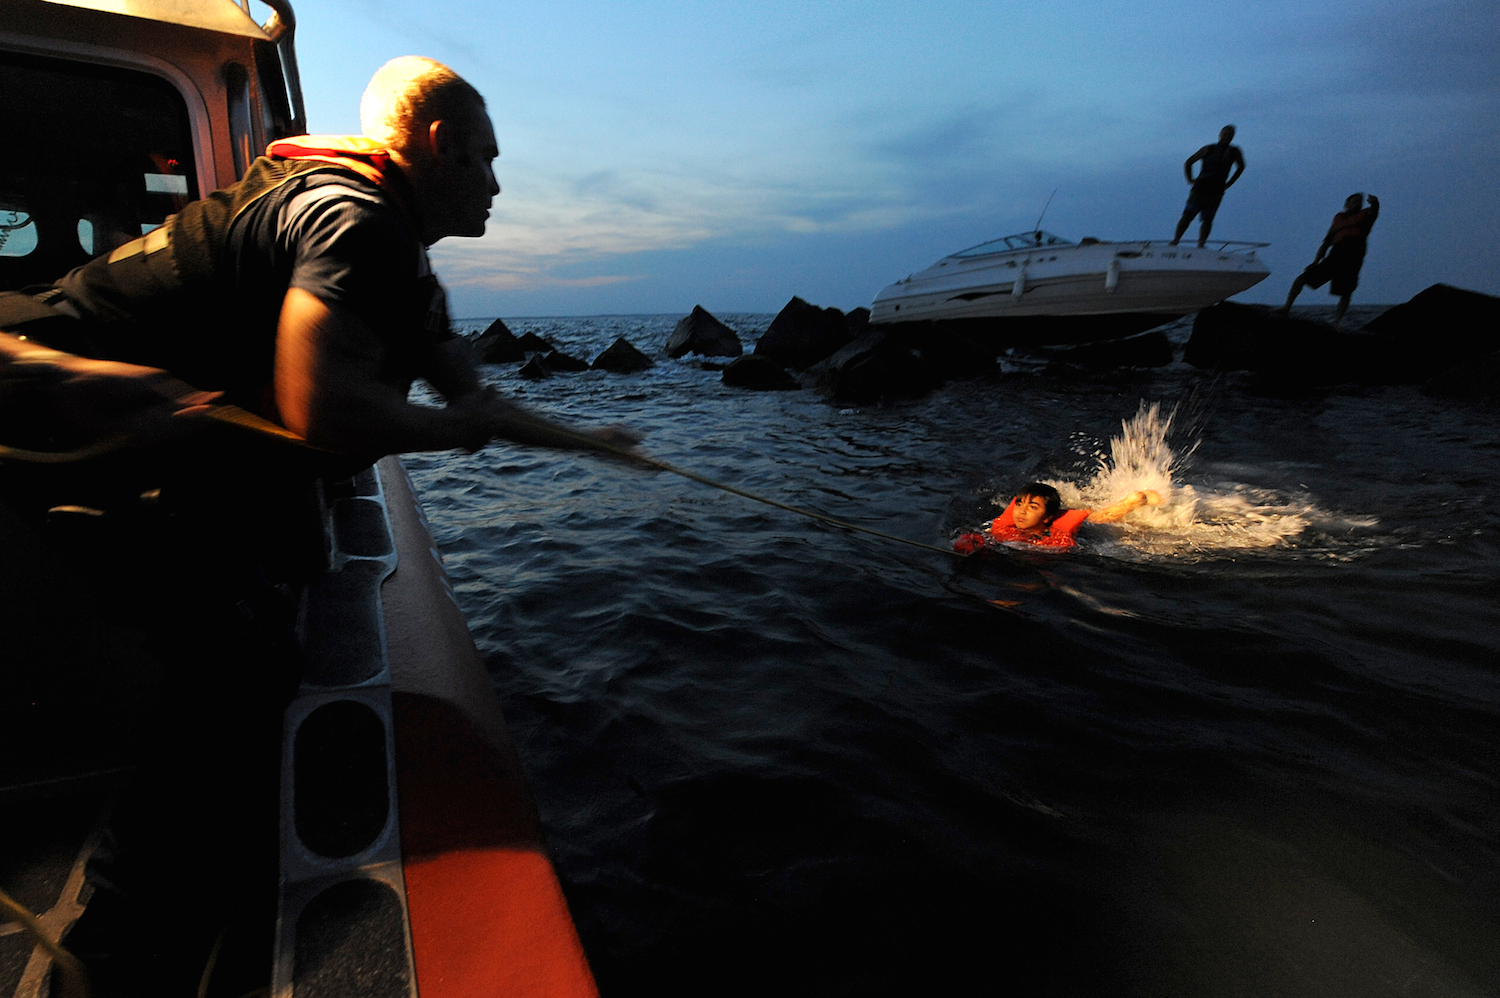 Coast Guard rescue during an abandon ship situation